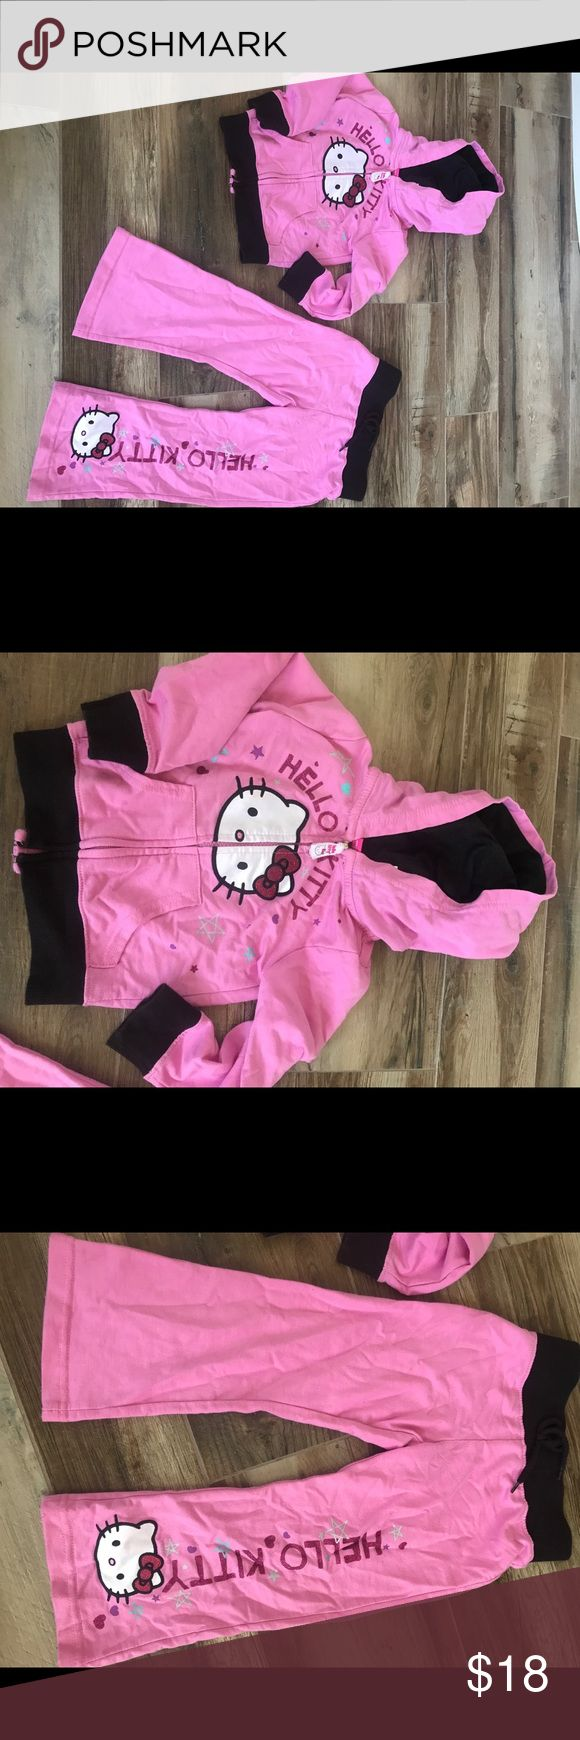 Hello Kitty Track Suit - Size 3T Perfect in pink, adorable Hello Kitty Track Suit! Size 3T. In perfect condition! Glitter accents! Zip up with attached hood and drawstring on bottoms. Lightweight, yet keeps the little princess super warm on park nights! Love the adorable comfy Hello Kitty design! 🖤 Hello Kitty Matching Sets